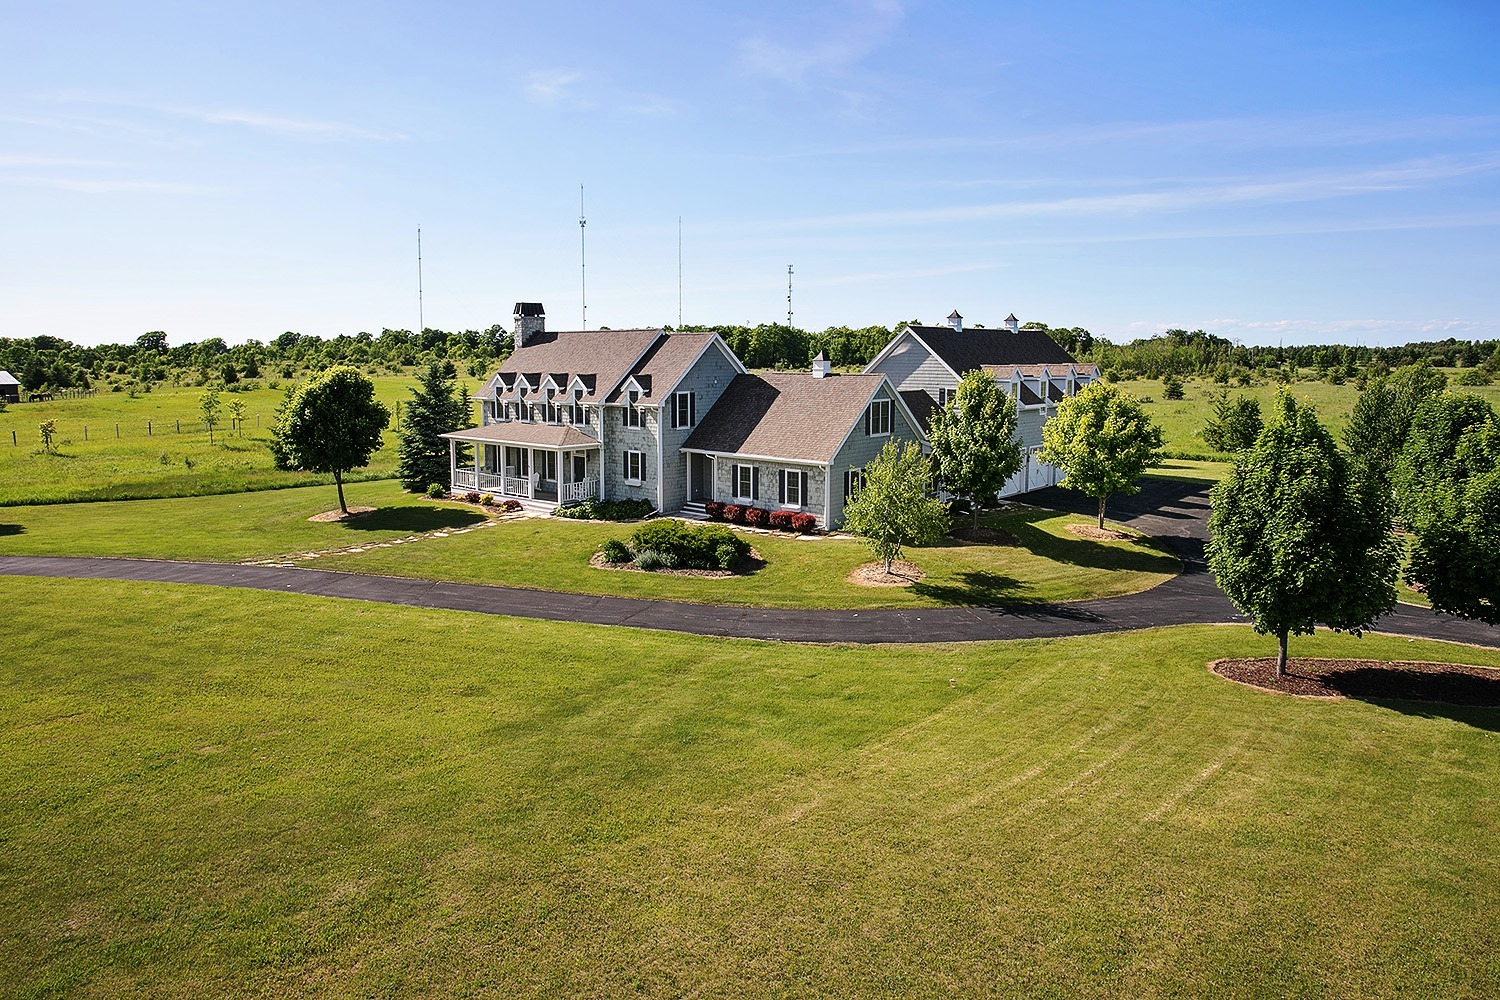 4 Bedroom Country Home For Sale In Door County Wi